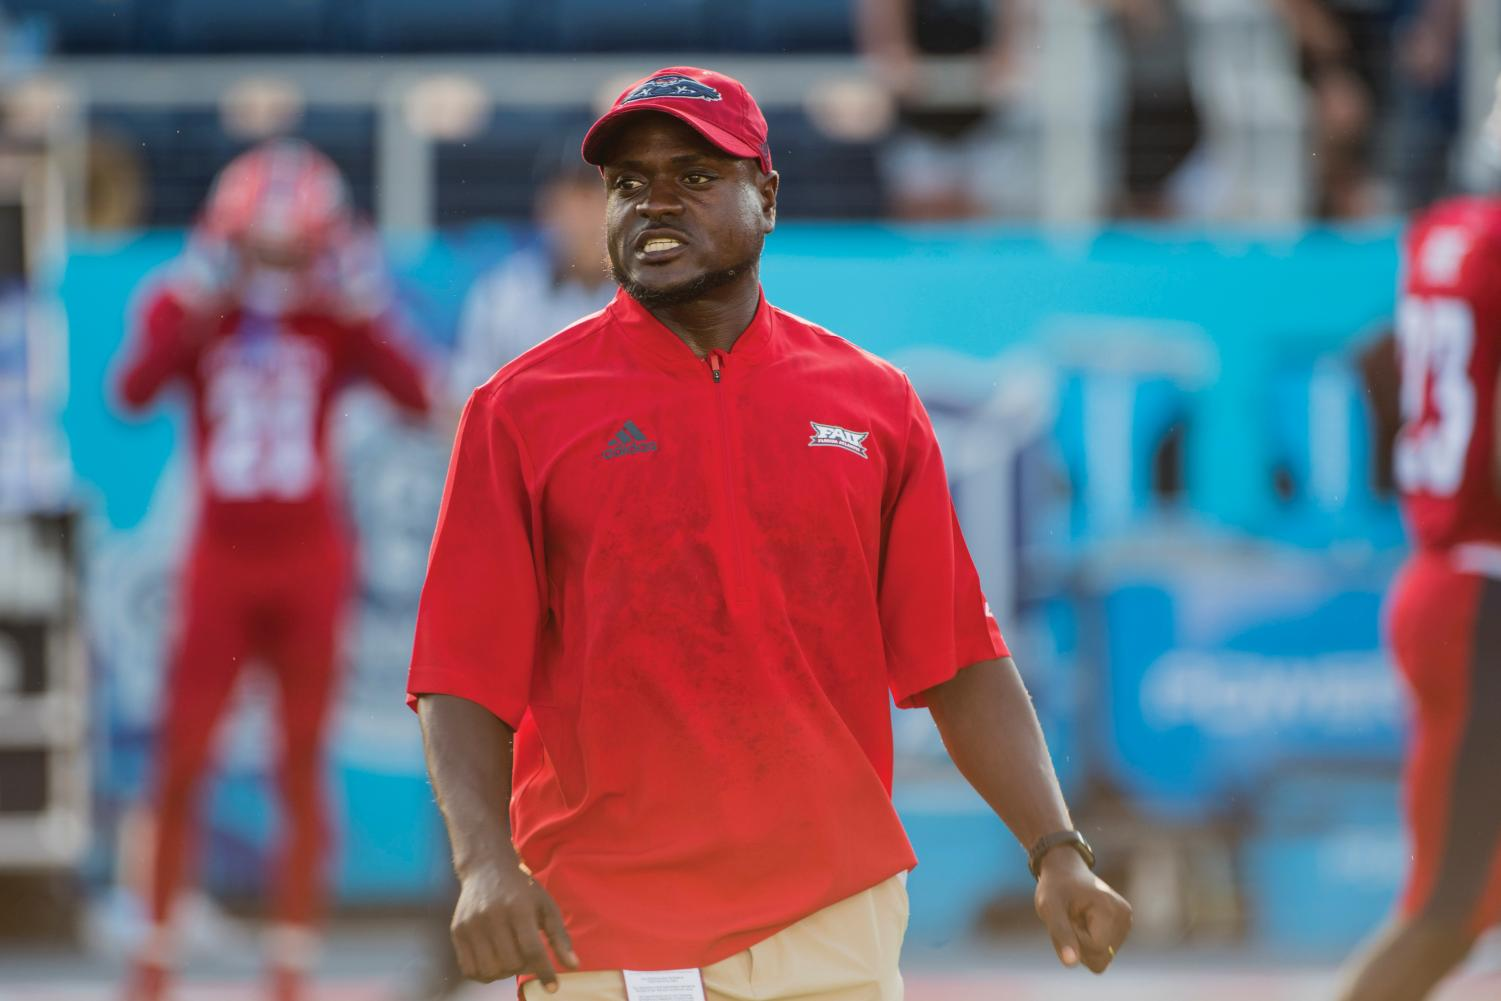 Keynodo Hudson worked under Lane Kiffin at both the University of Southern California and Florida Atlantic University. In 2017, he helped the Owls finish 11-3.